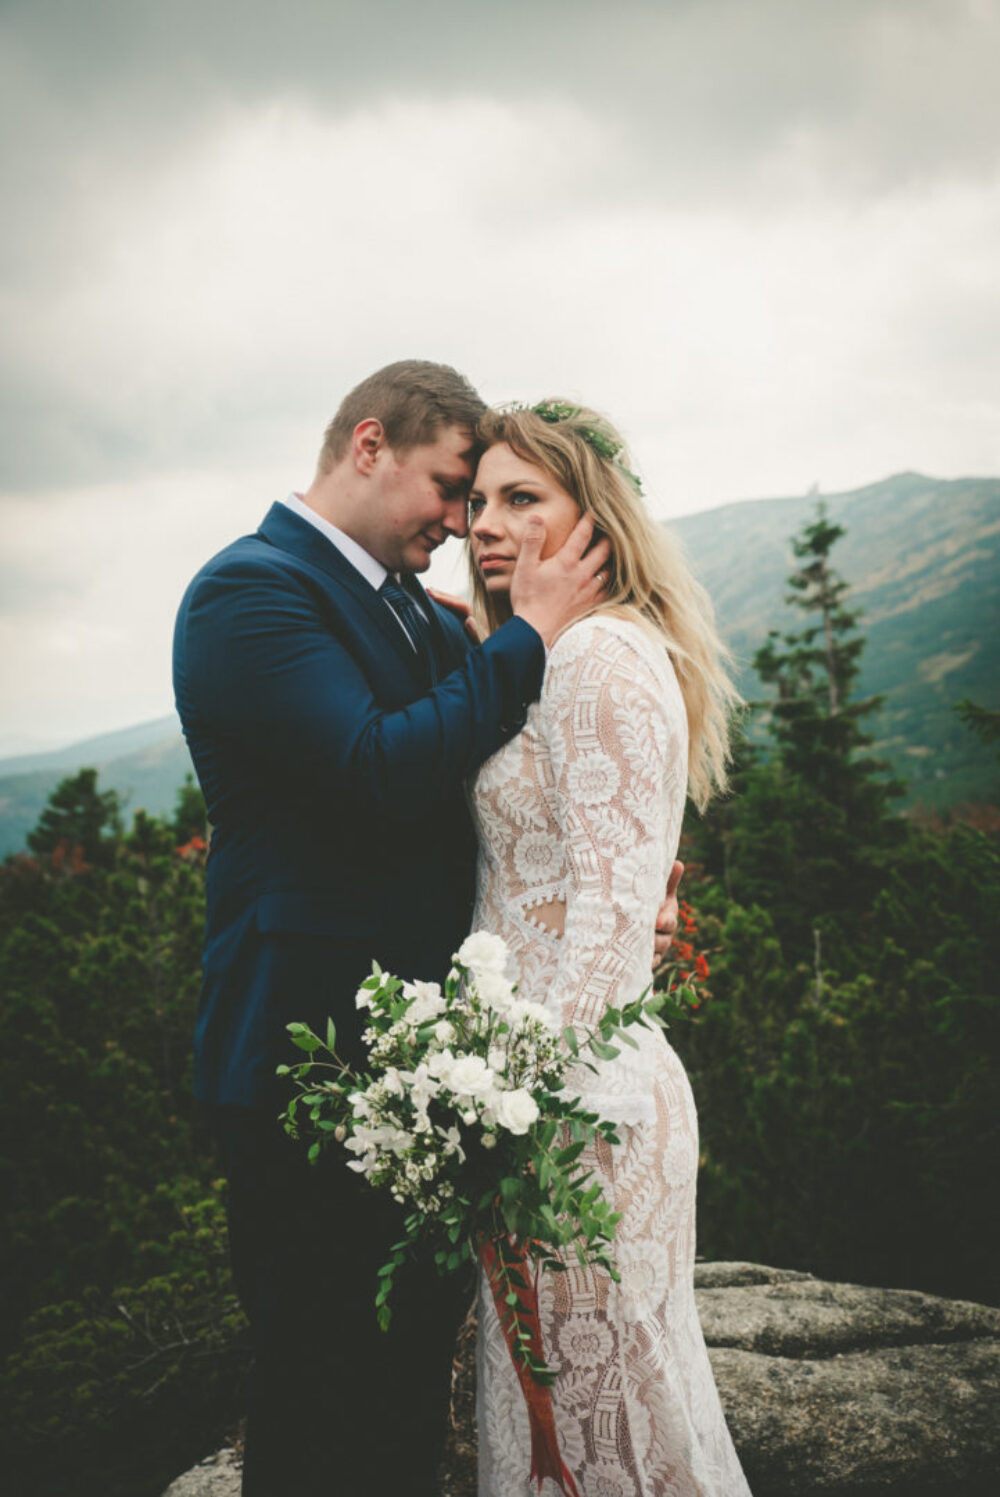 Kasia & Marcin – Mountain Love Session